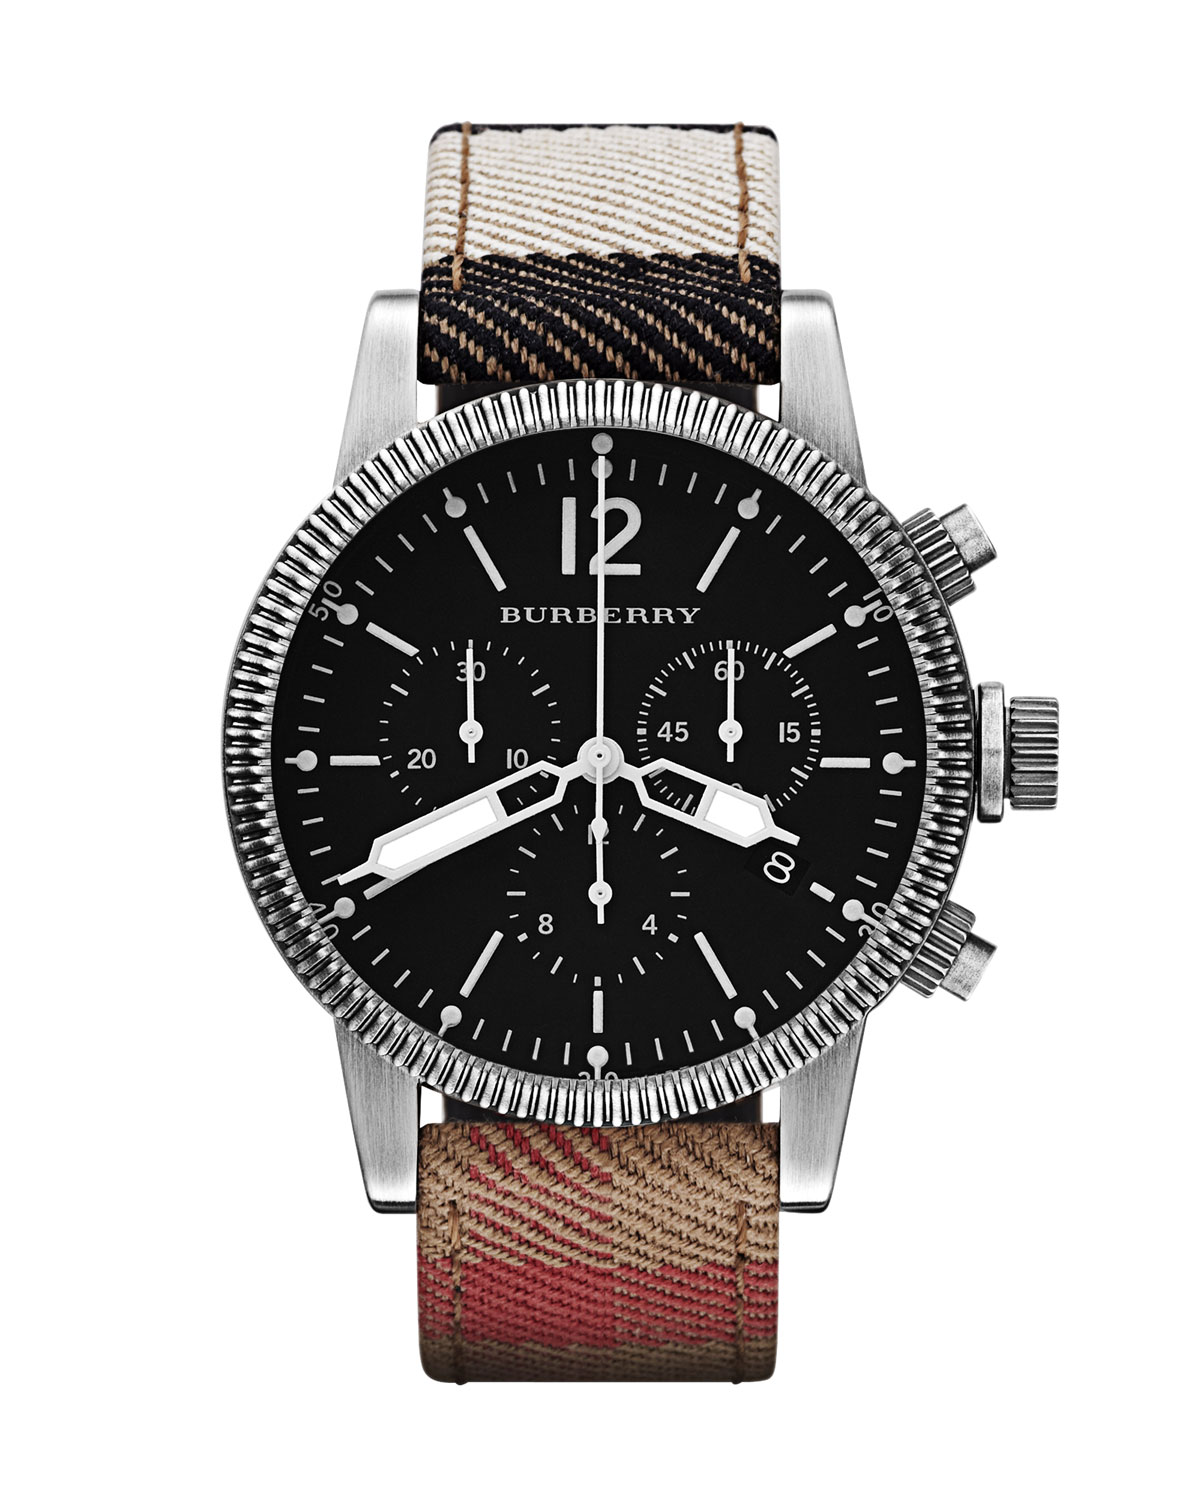 f428657dbe5 Lyst - Burberry Brit Mens Watch in Brown for Men